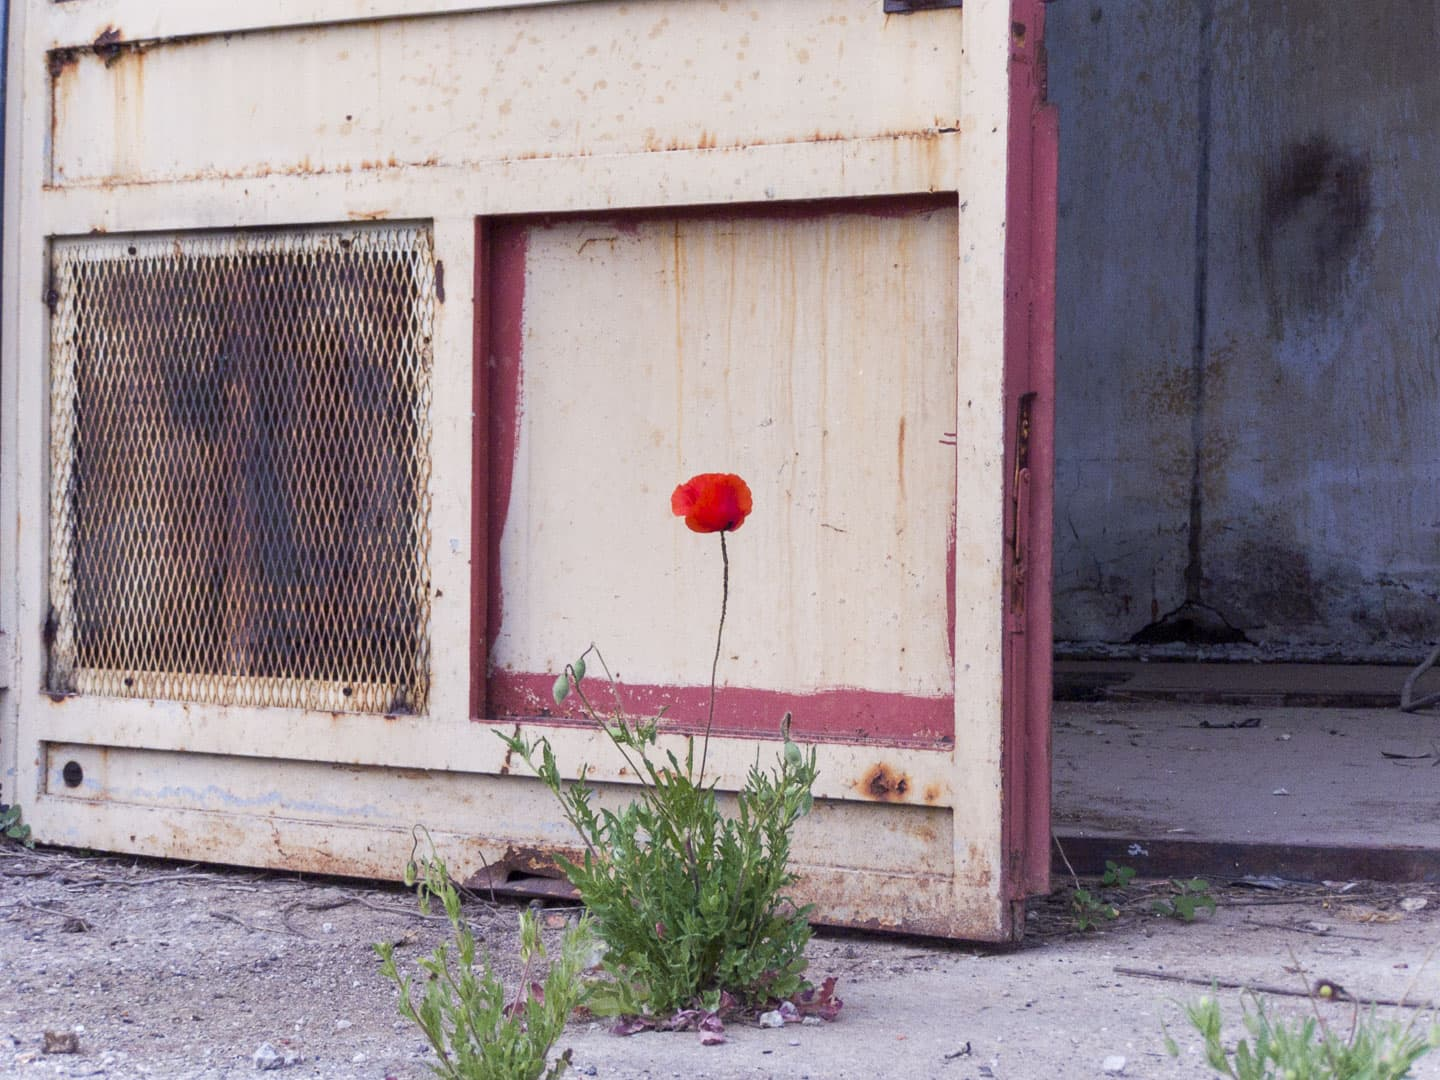 Poppy Flower at Unknown Abandoned Factory in Nichelino, Italy